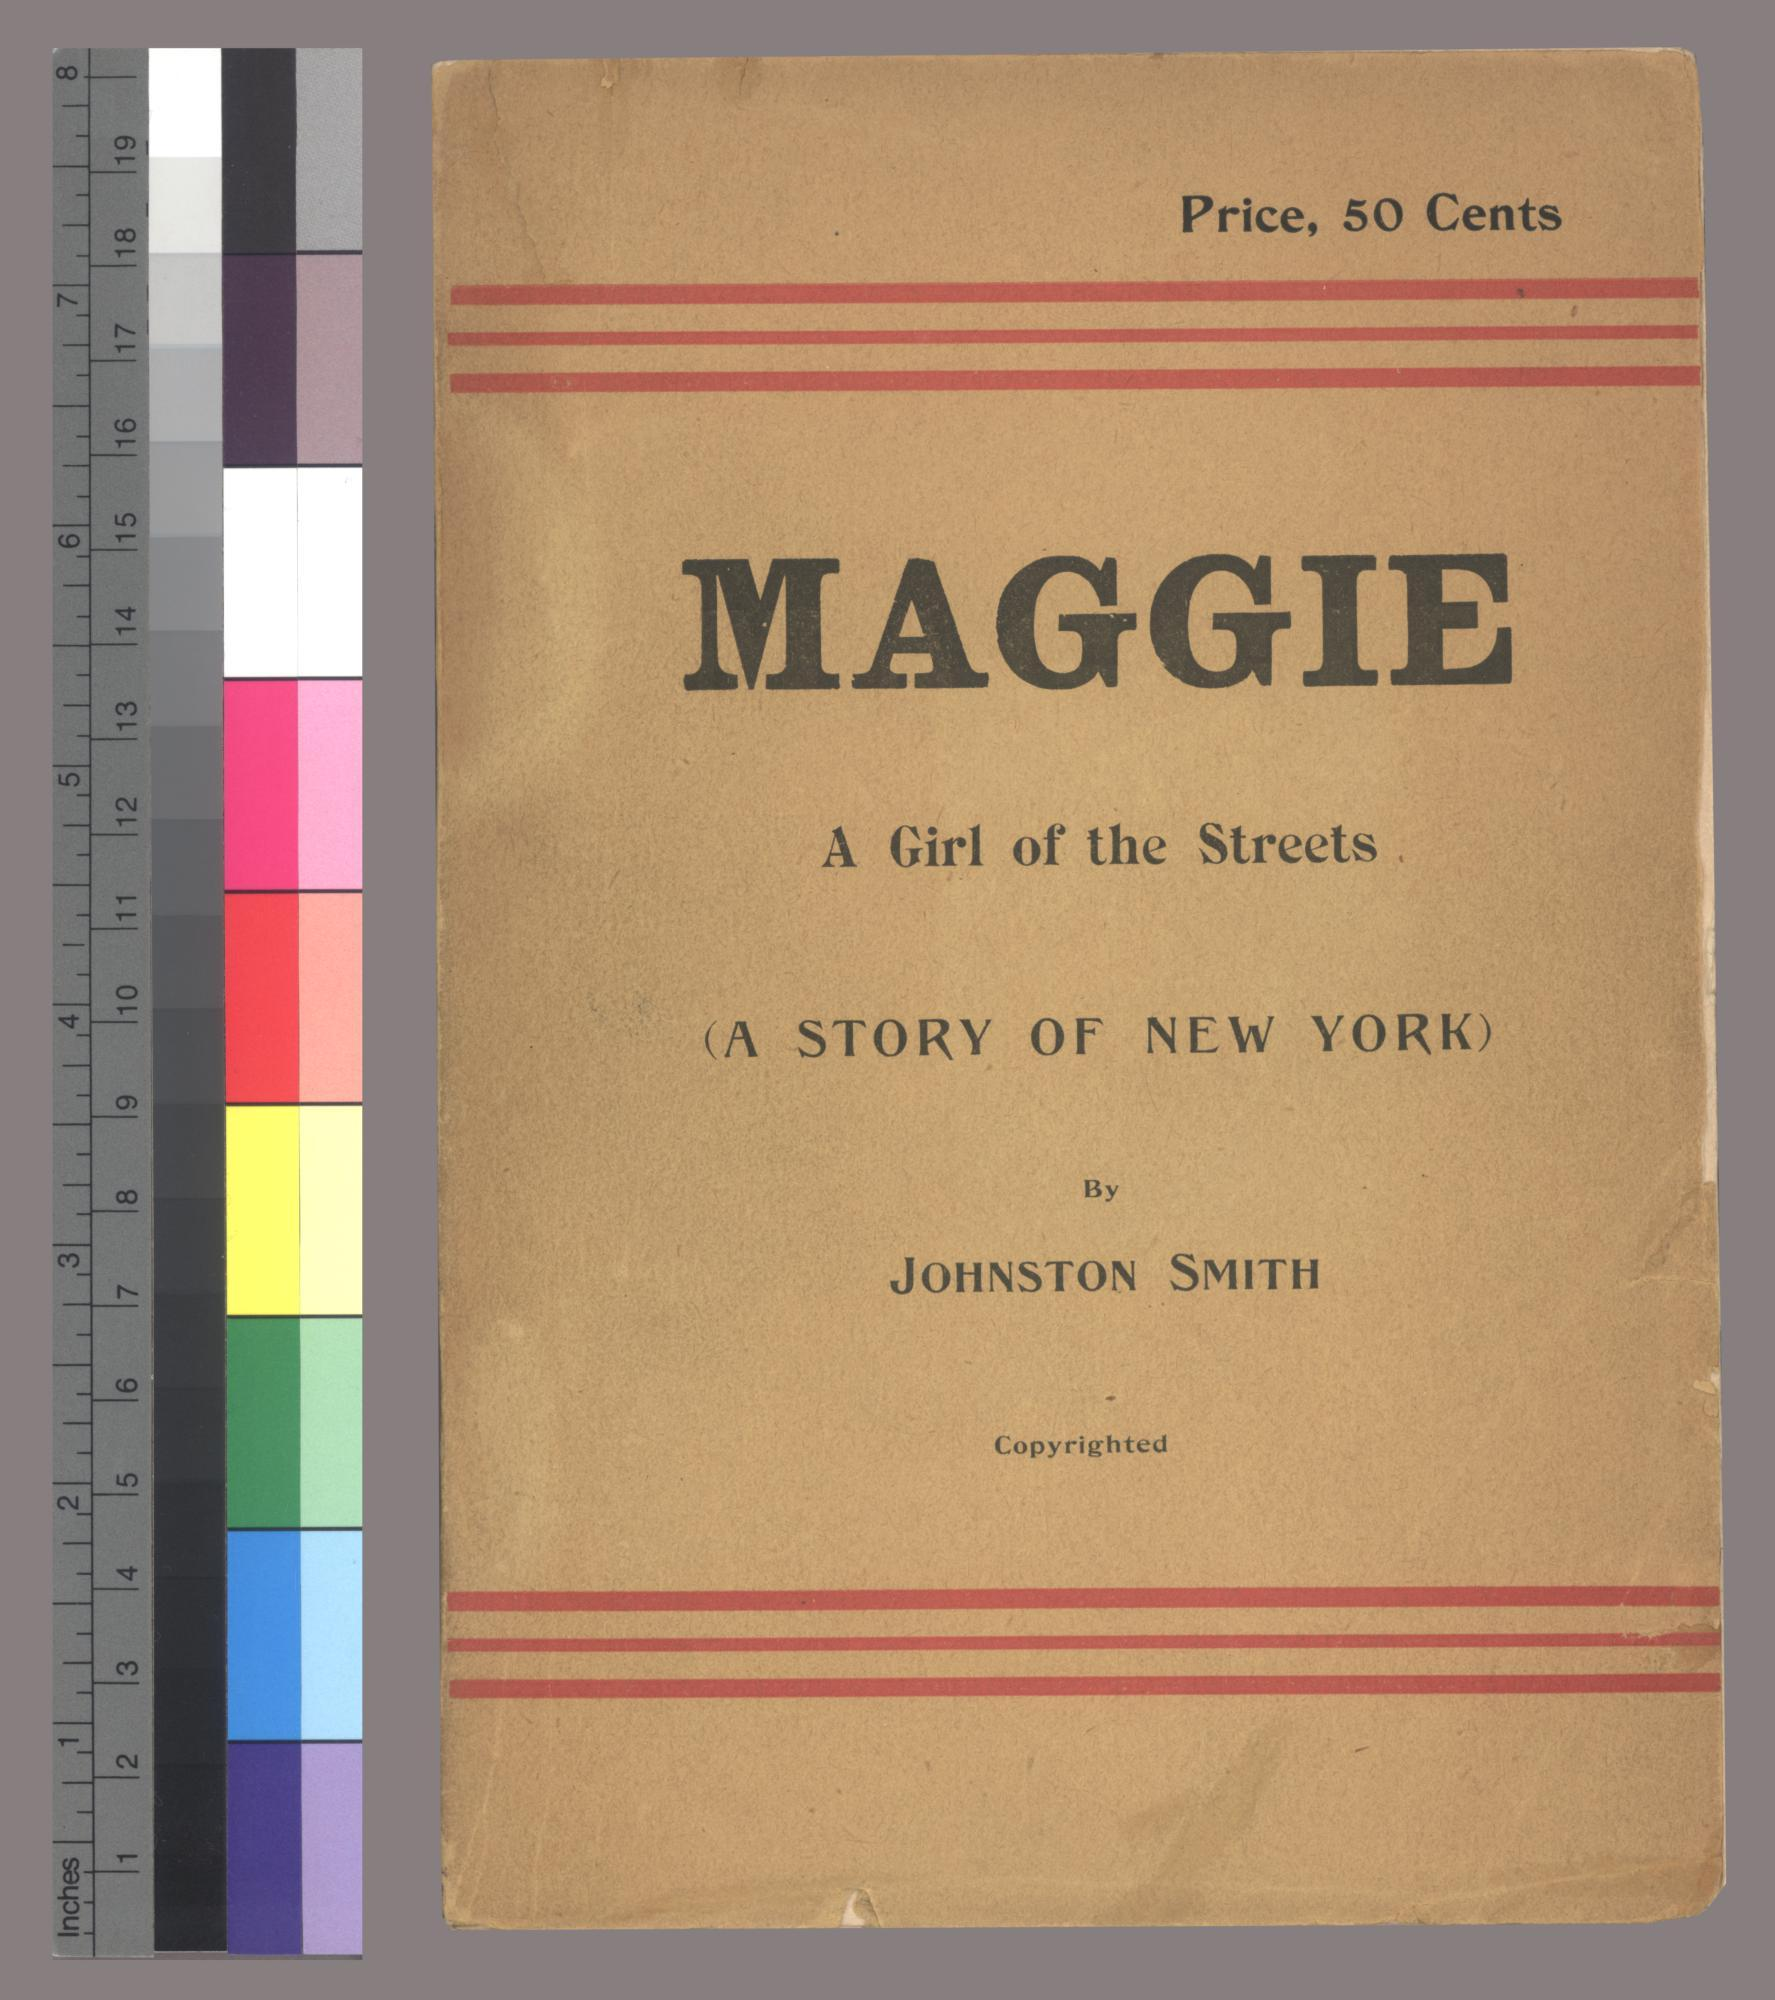 Maggie, a Girl of the Streets, a story of New York, by Johnston Smith